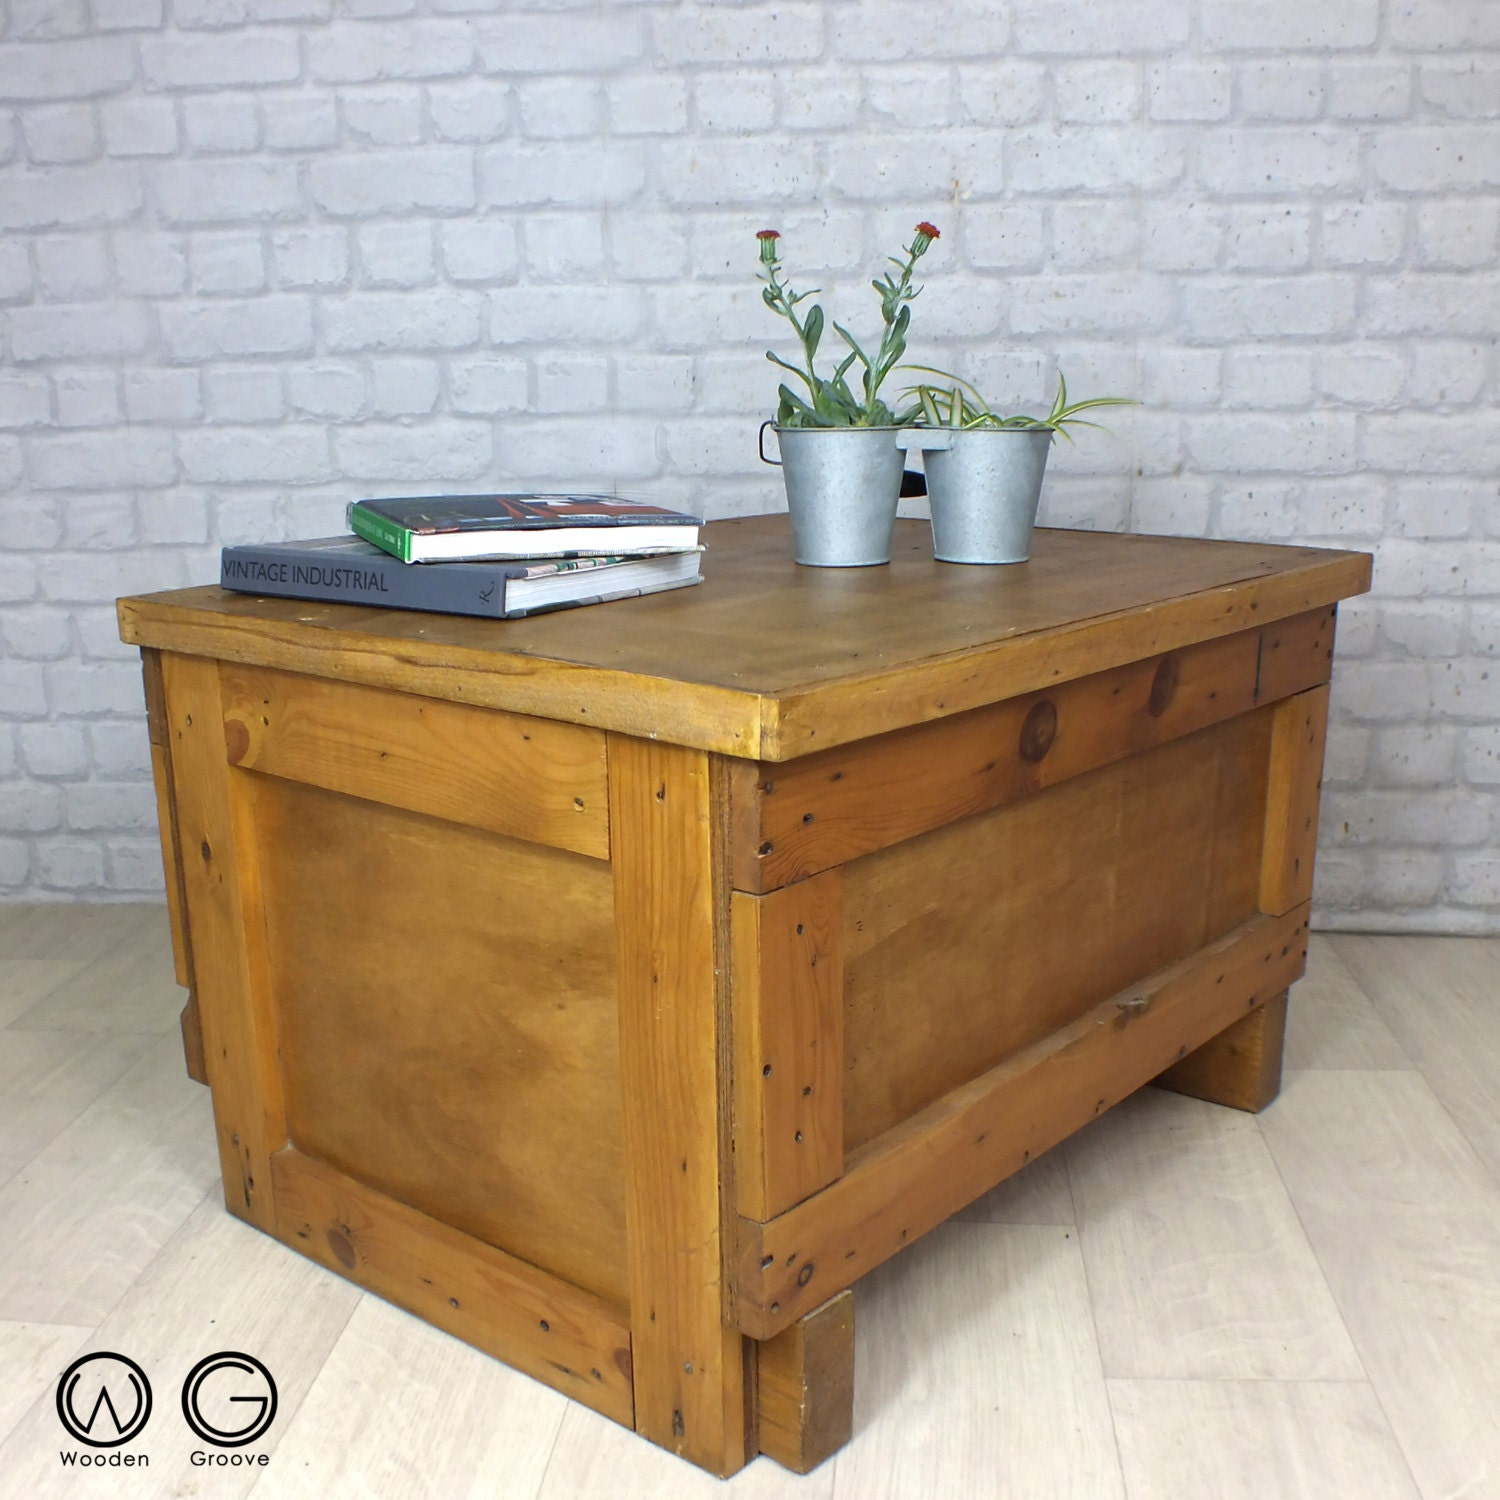 vintage industrial salvage reclaimed timber storage crate coffee table